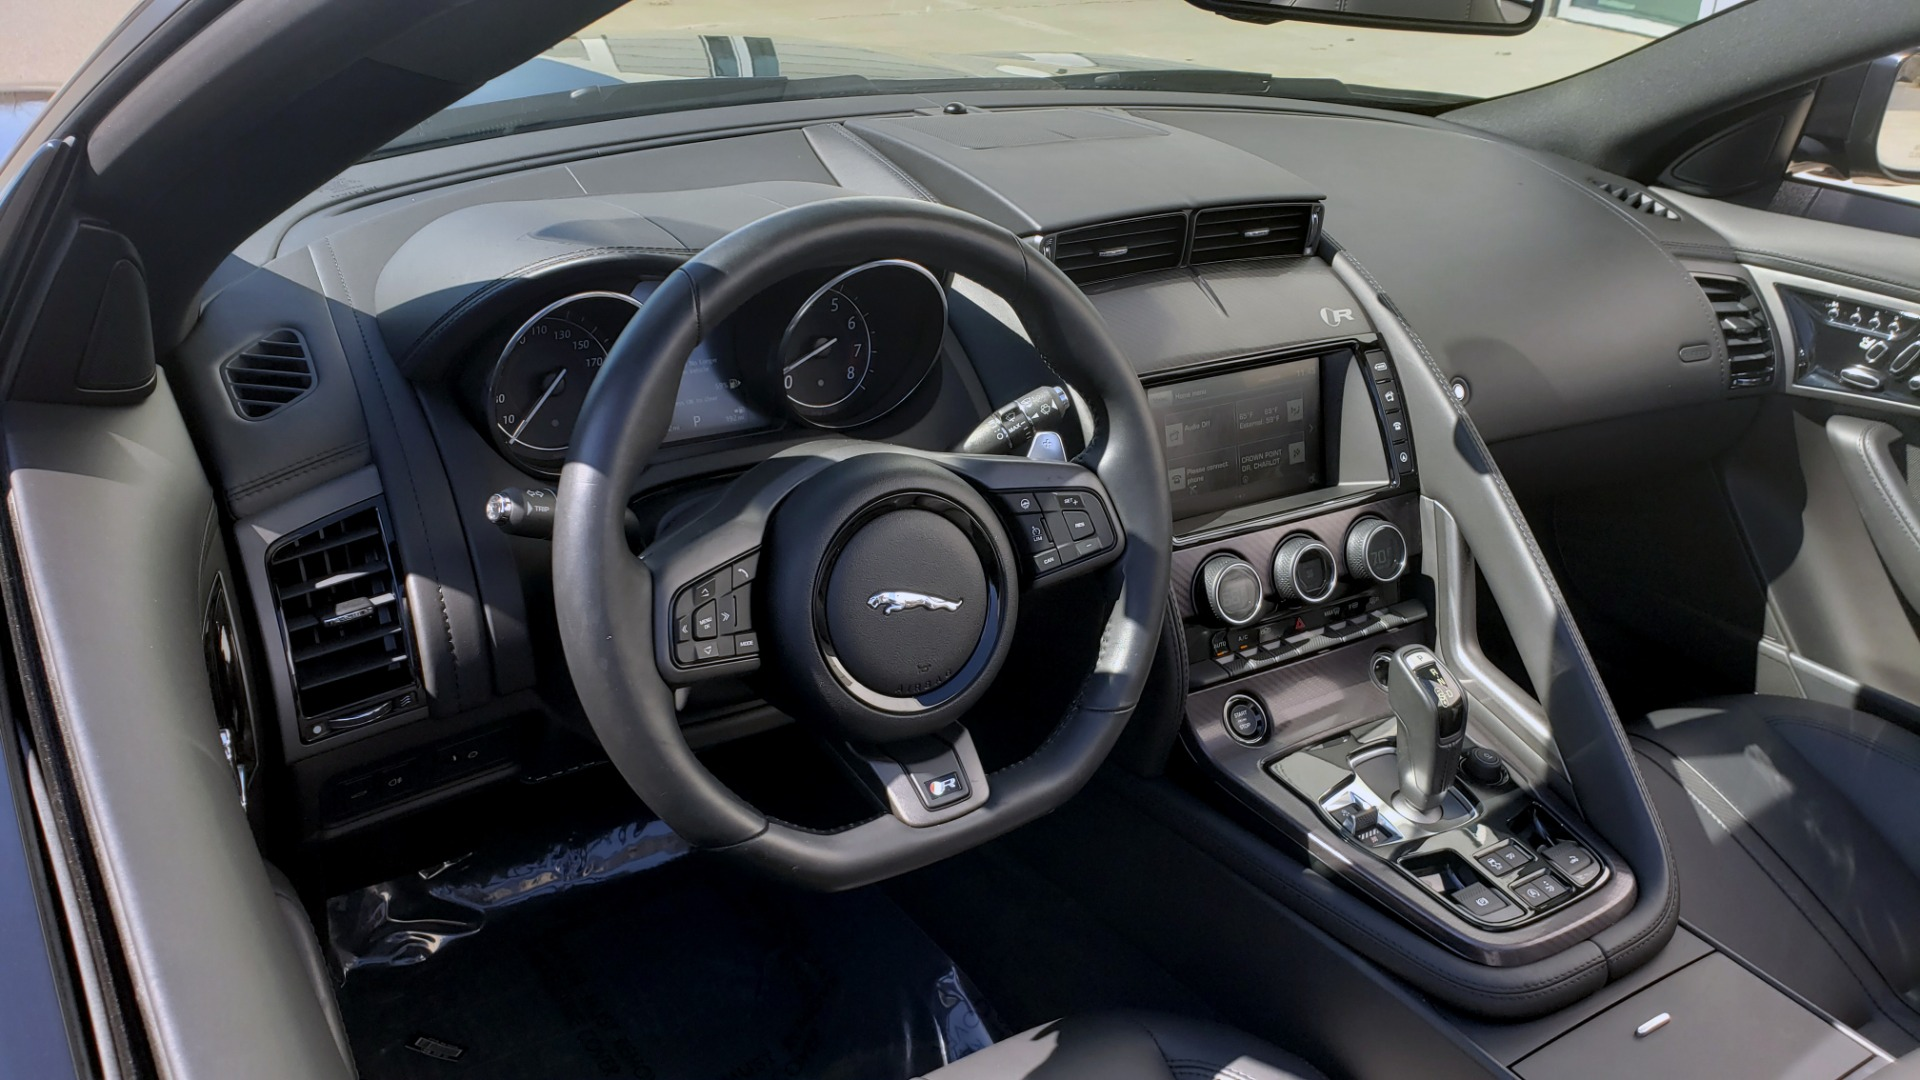 Used 2016 Jaguar F-TYPE R CONVERTIBLE / SC 5.0L 550HP / VISION PACK 3 / BSM / REARVIEW for sale $63,000 at Formula Imports in Charlotte NC 28227 20